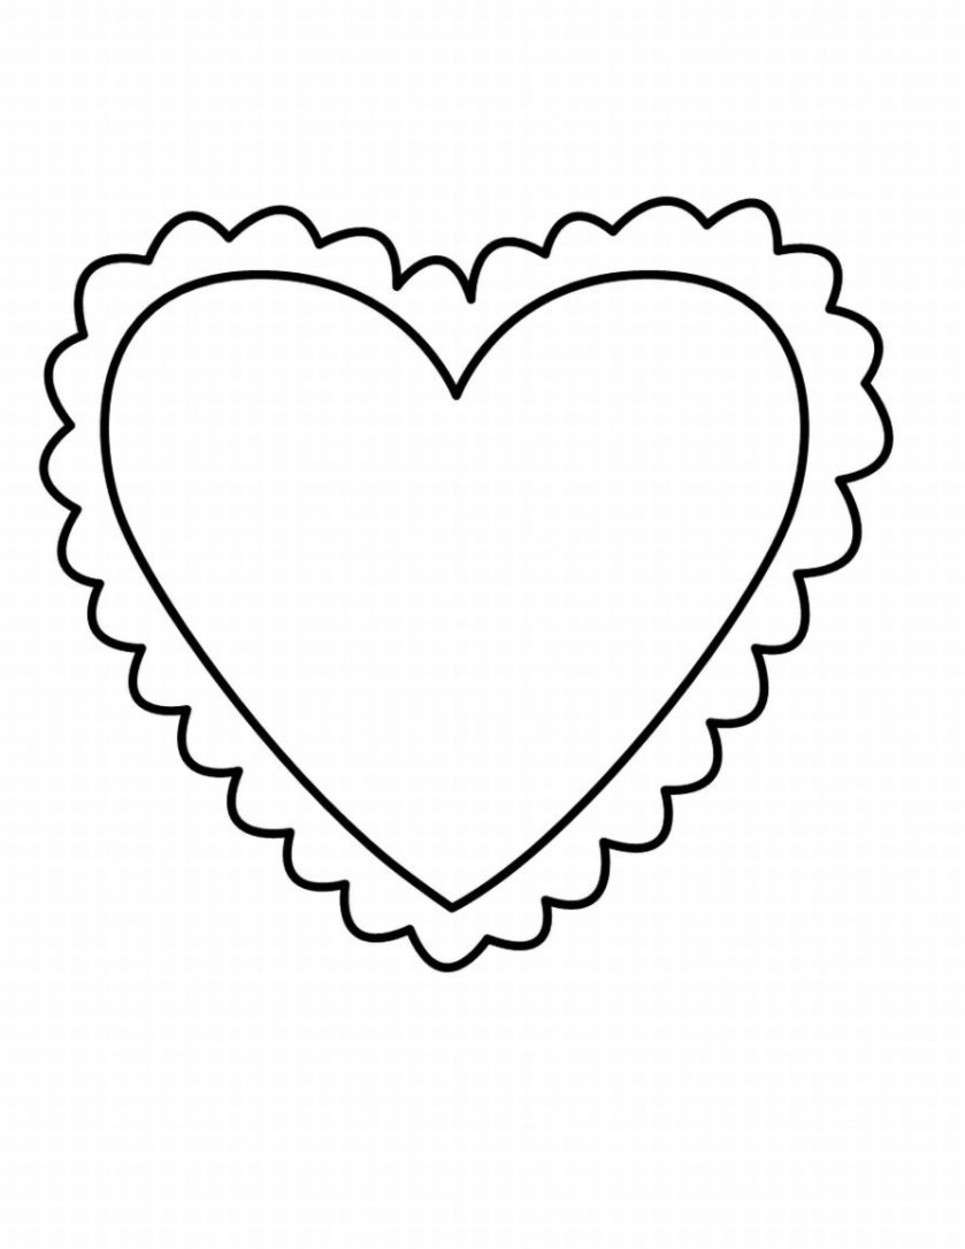 valentines heart coloring pages valentine heart coloring pages best coloring pages for kids coloring valentines pages heart